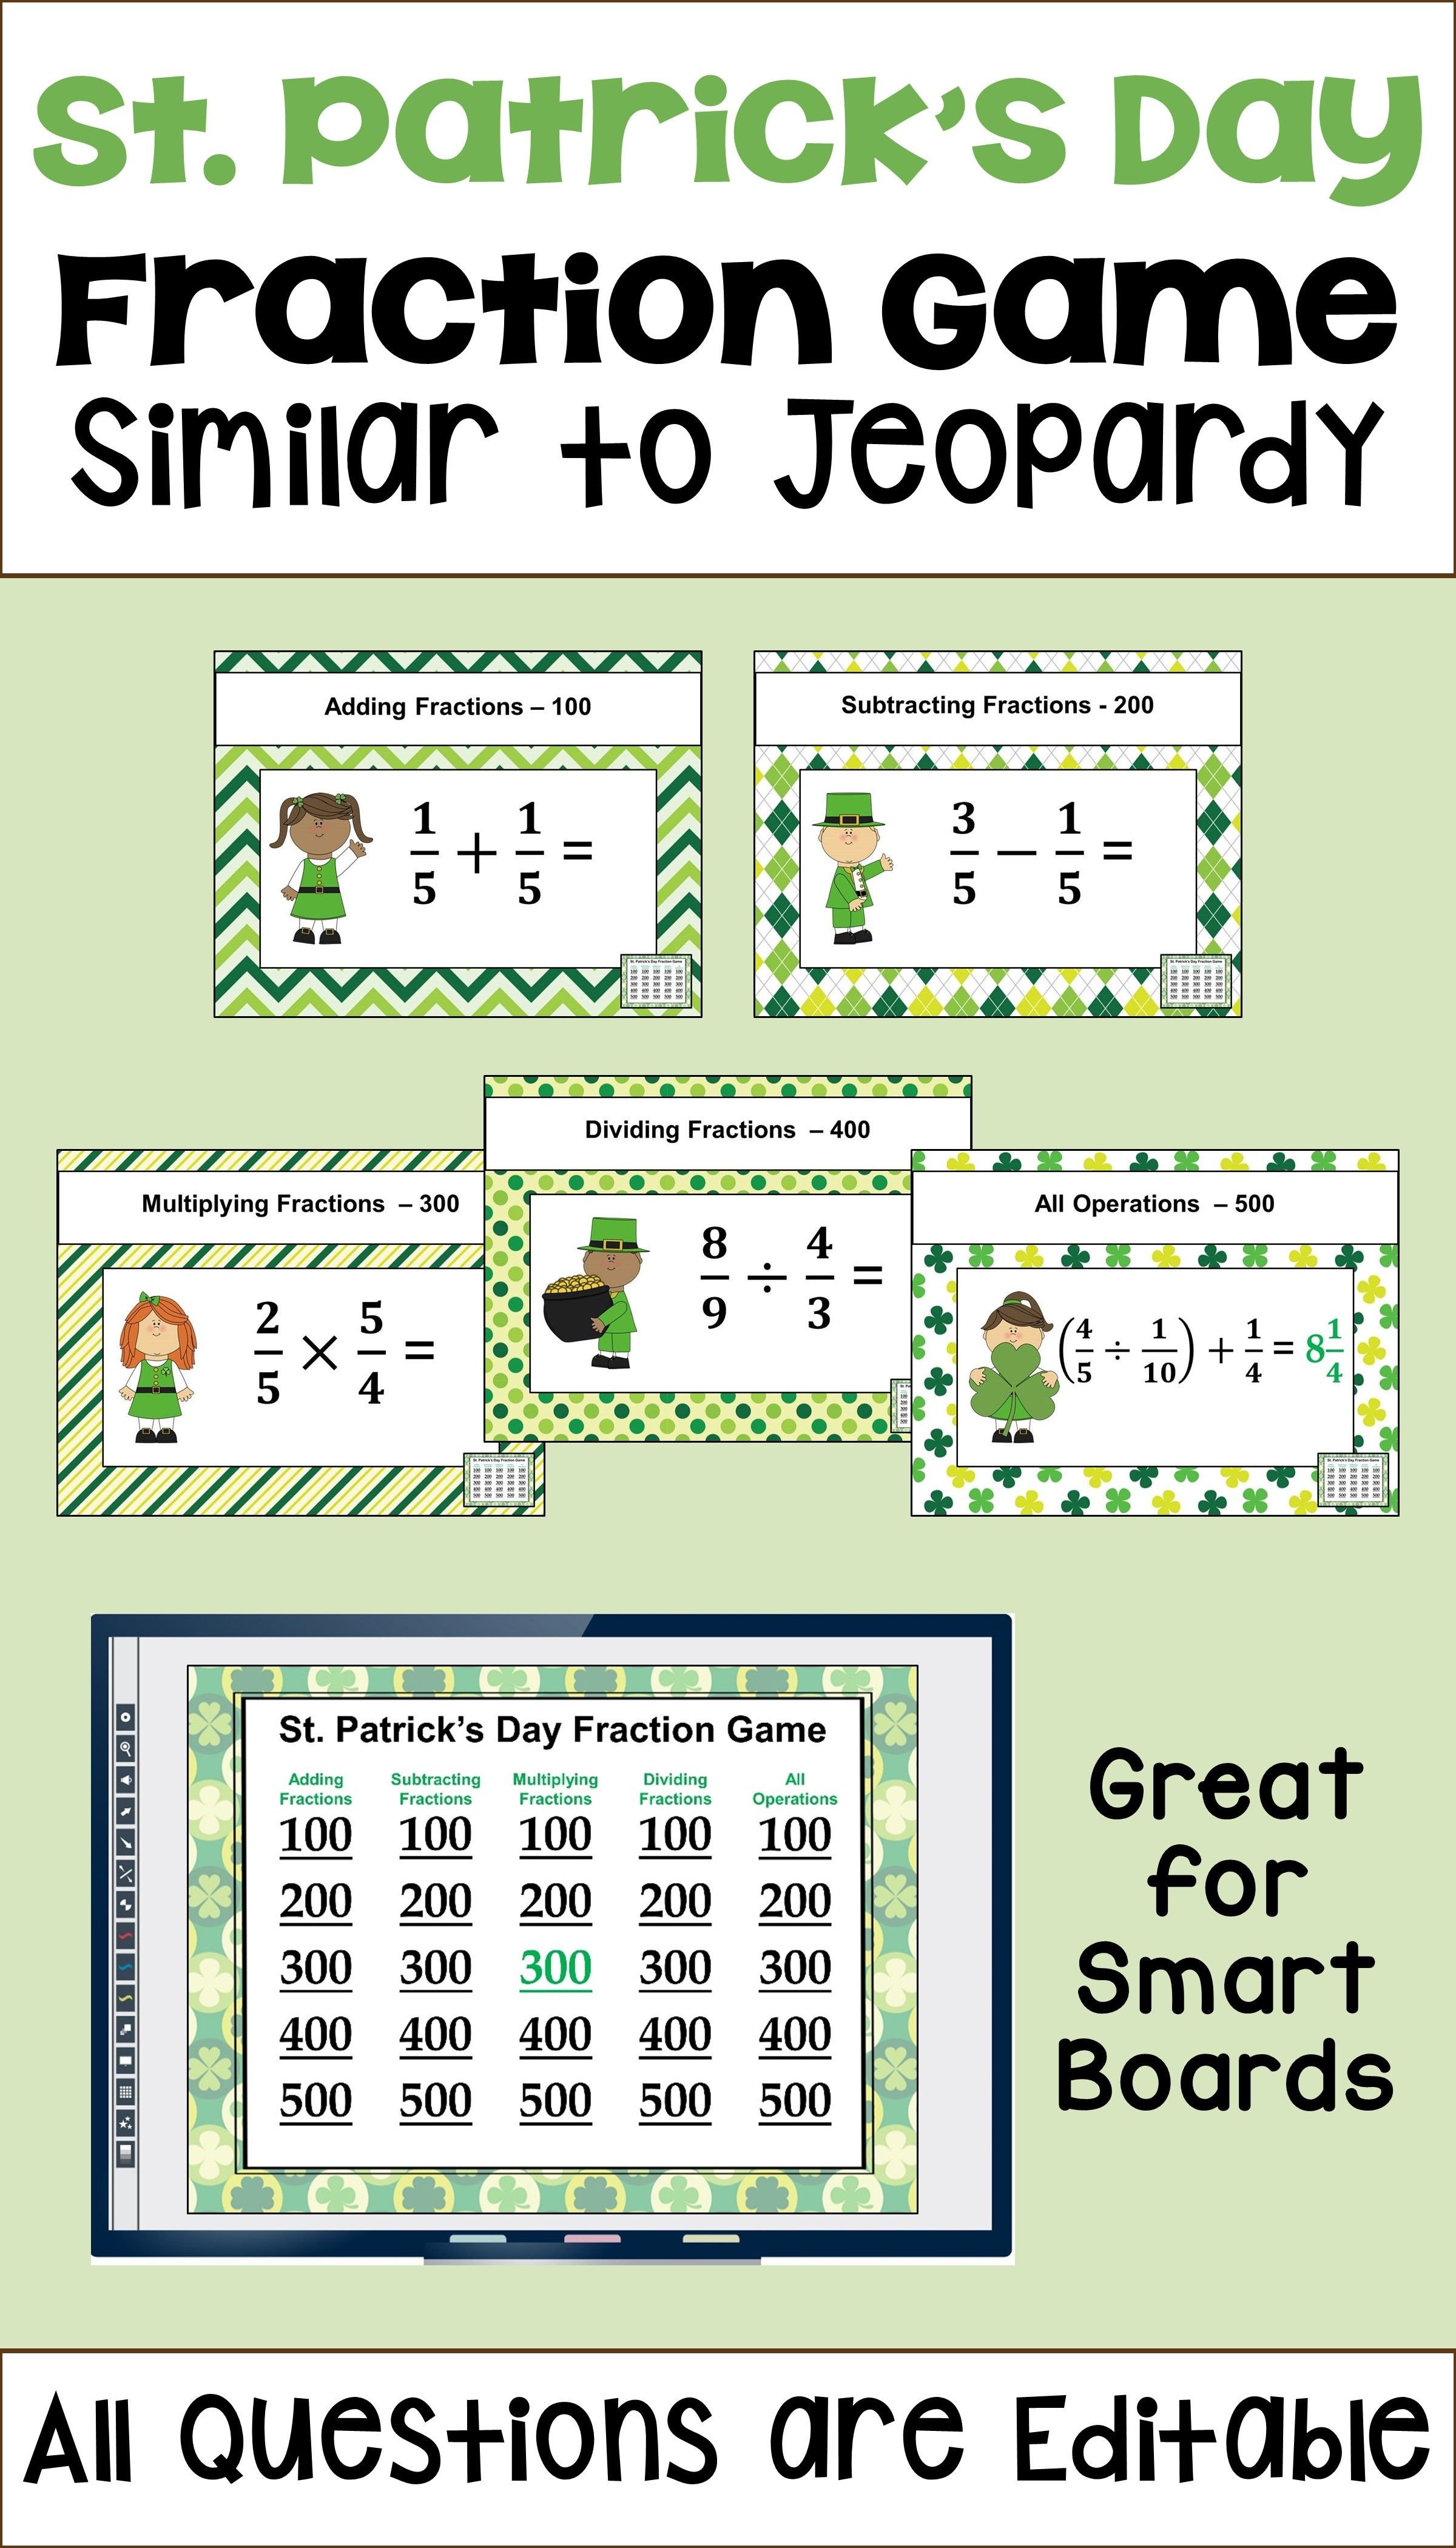 5th Grade Jeopardy Math St Patrick S Day Fraction Game Similar to Jeopardy